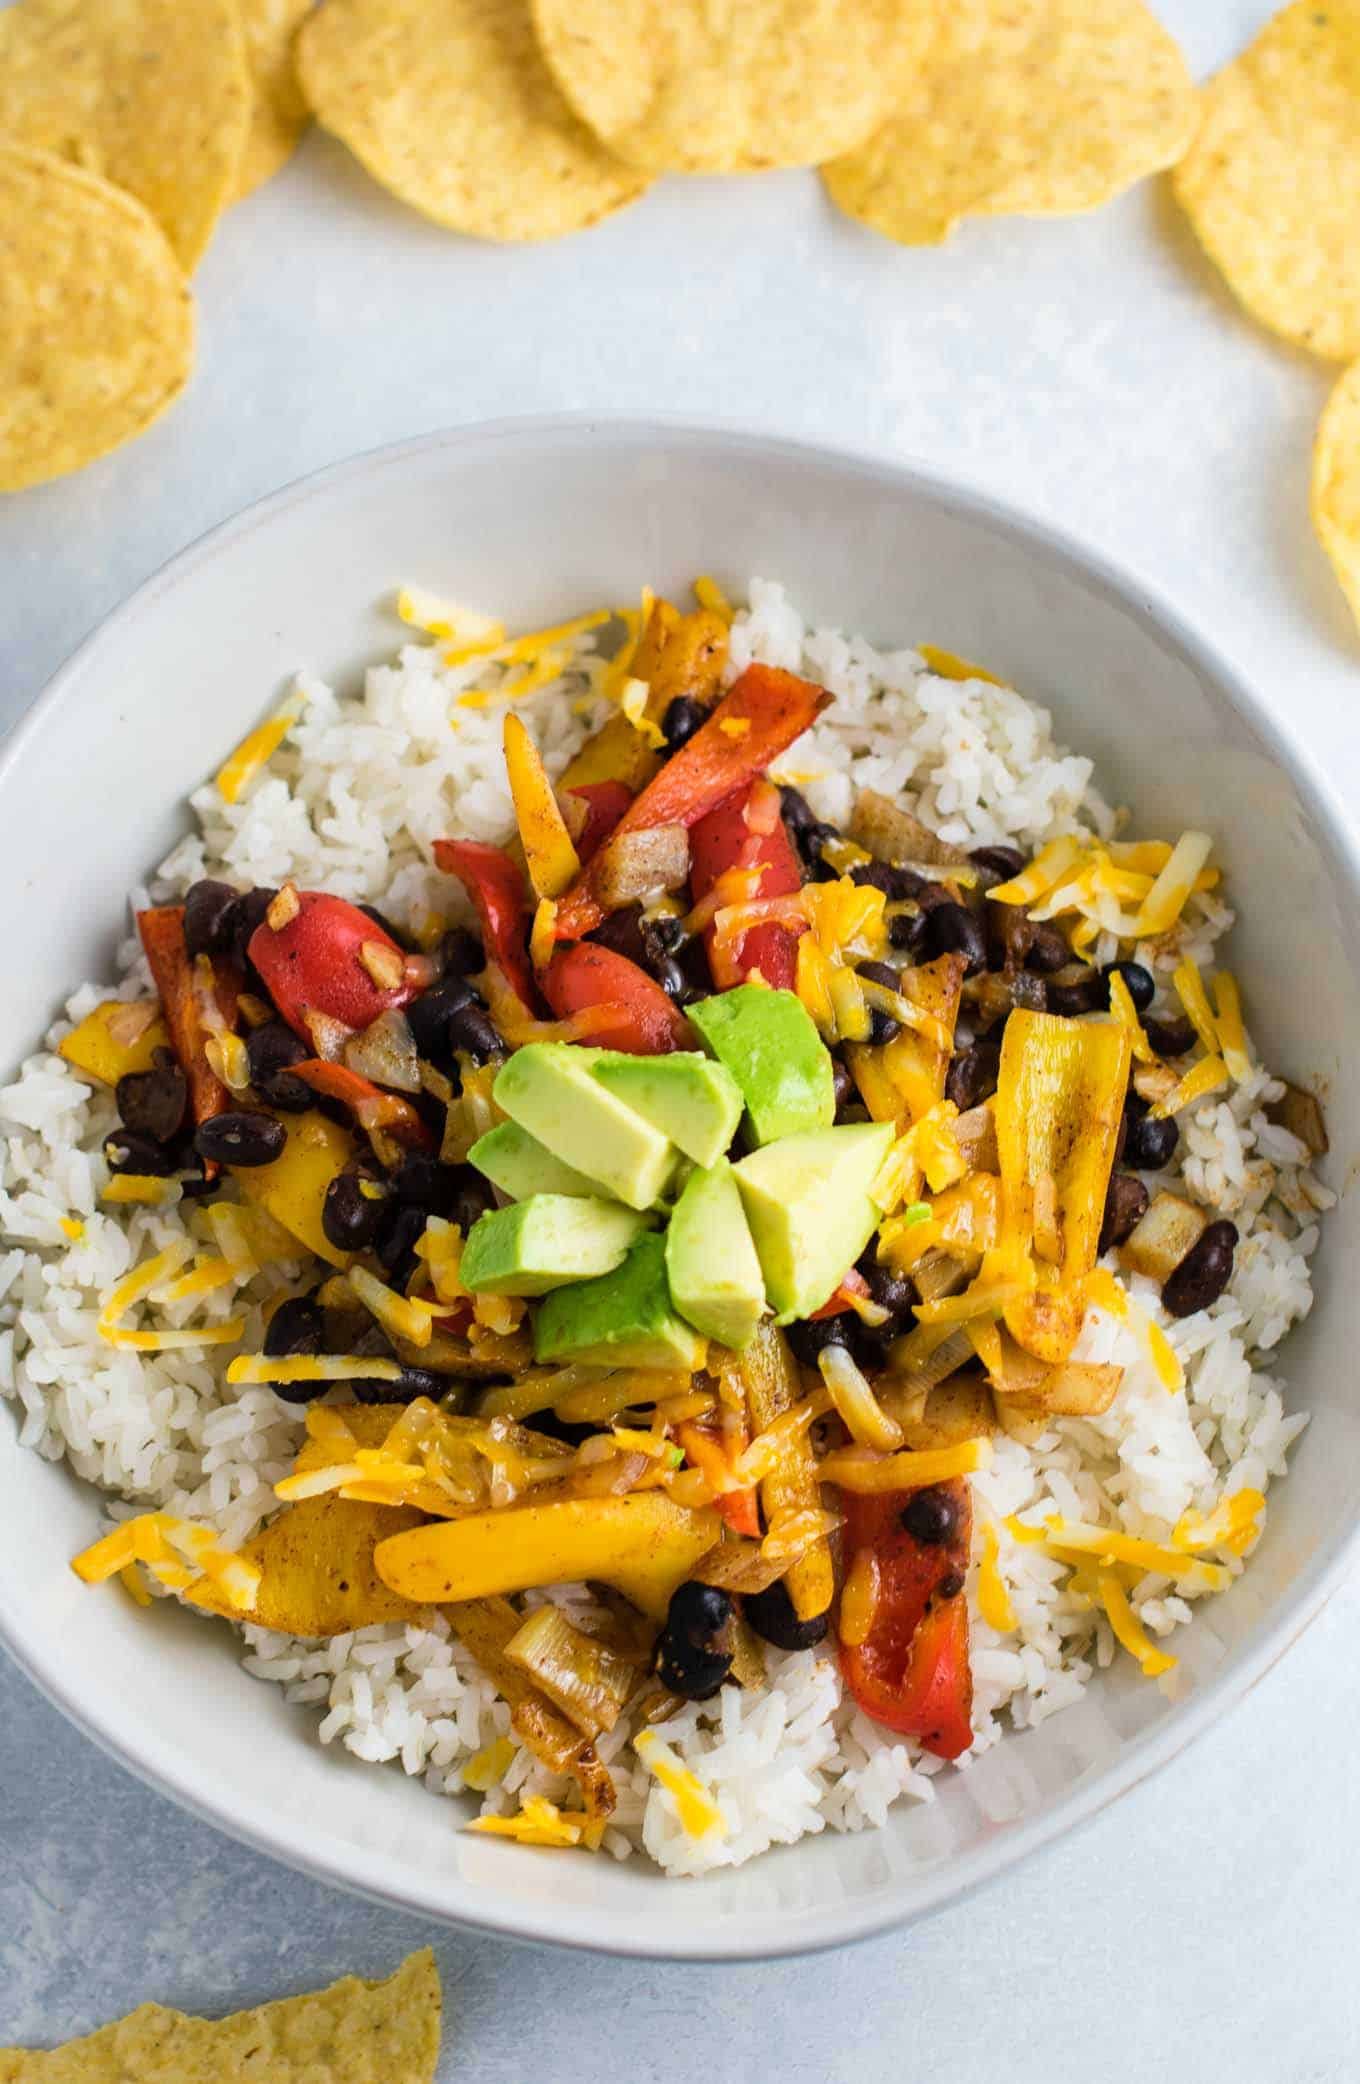 Vegetarian burrito bowl recipe with black beans, mini bell peppers, garlic, and onion. Better than chipotle! An easy vegetarian meal prep recipe or dinner the whole family will love! #vegetarianmealprep #vegetarianburritobowl #dinner #healthy #vegetarian